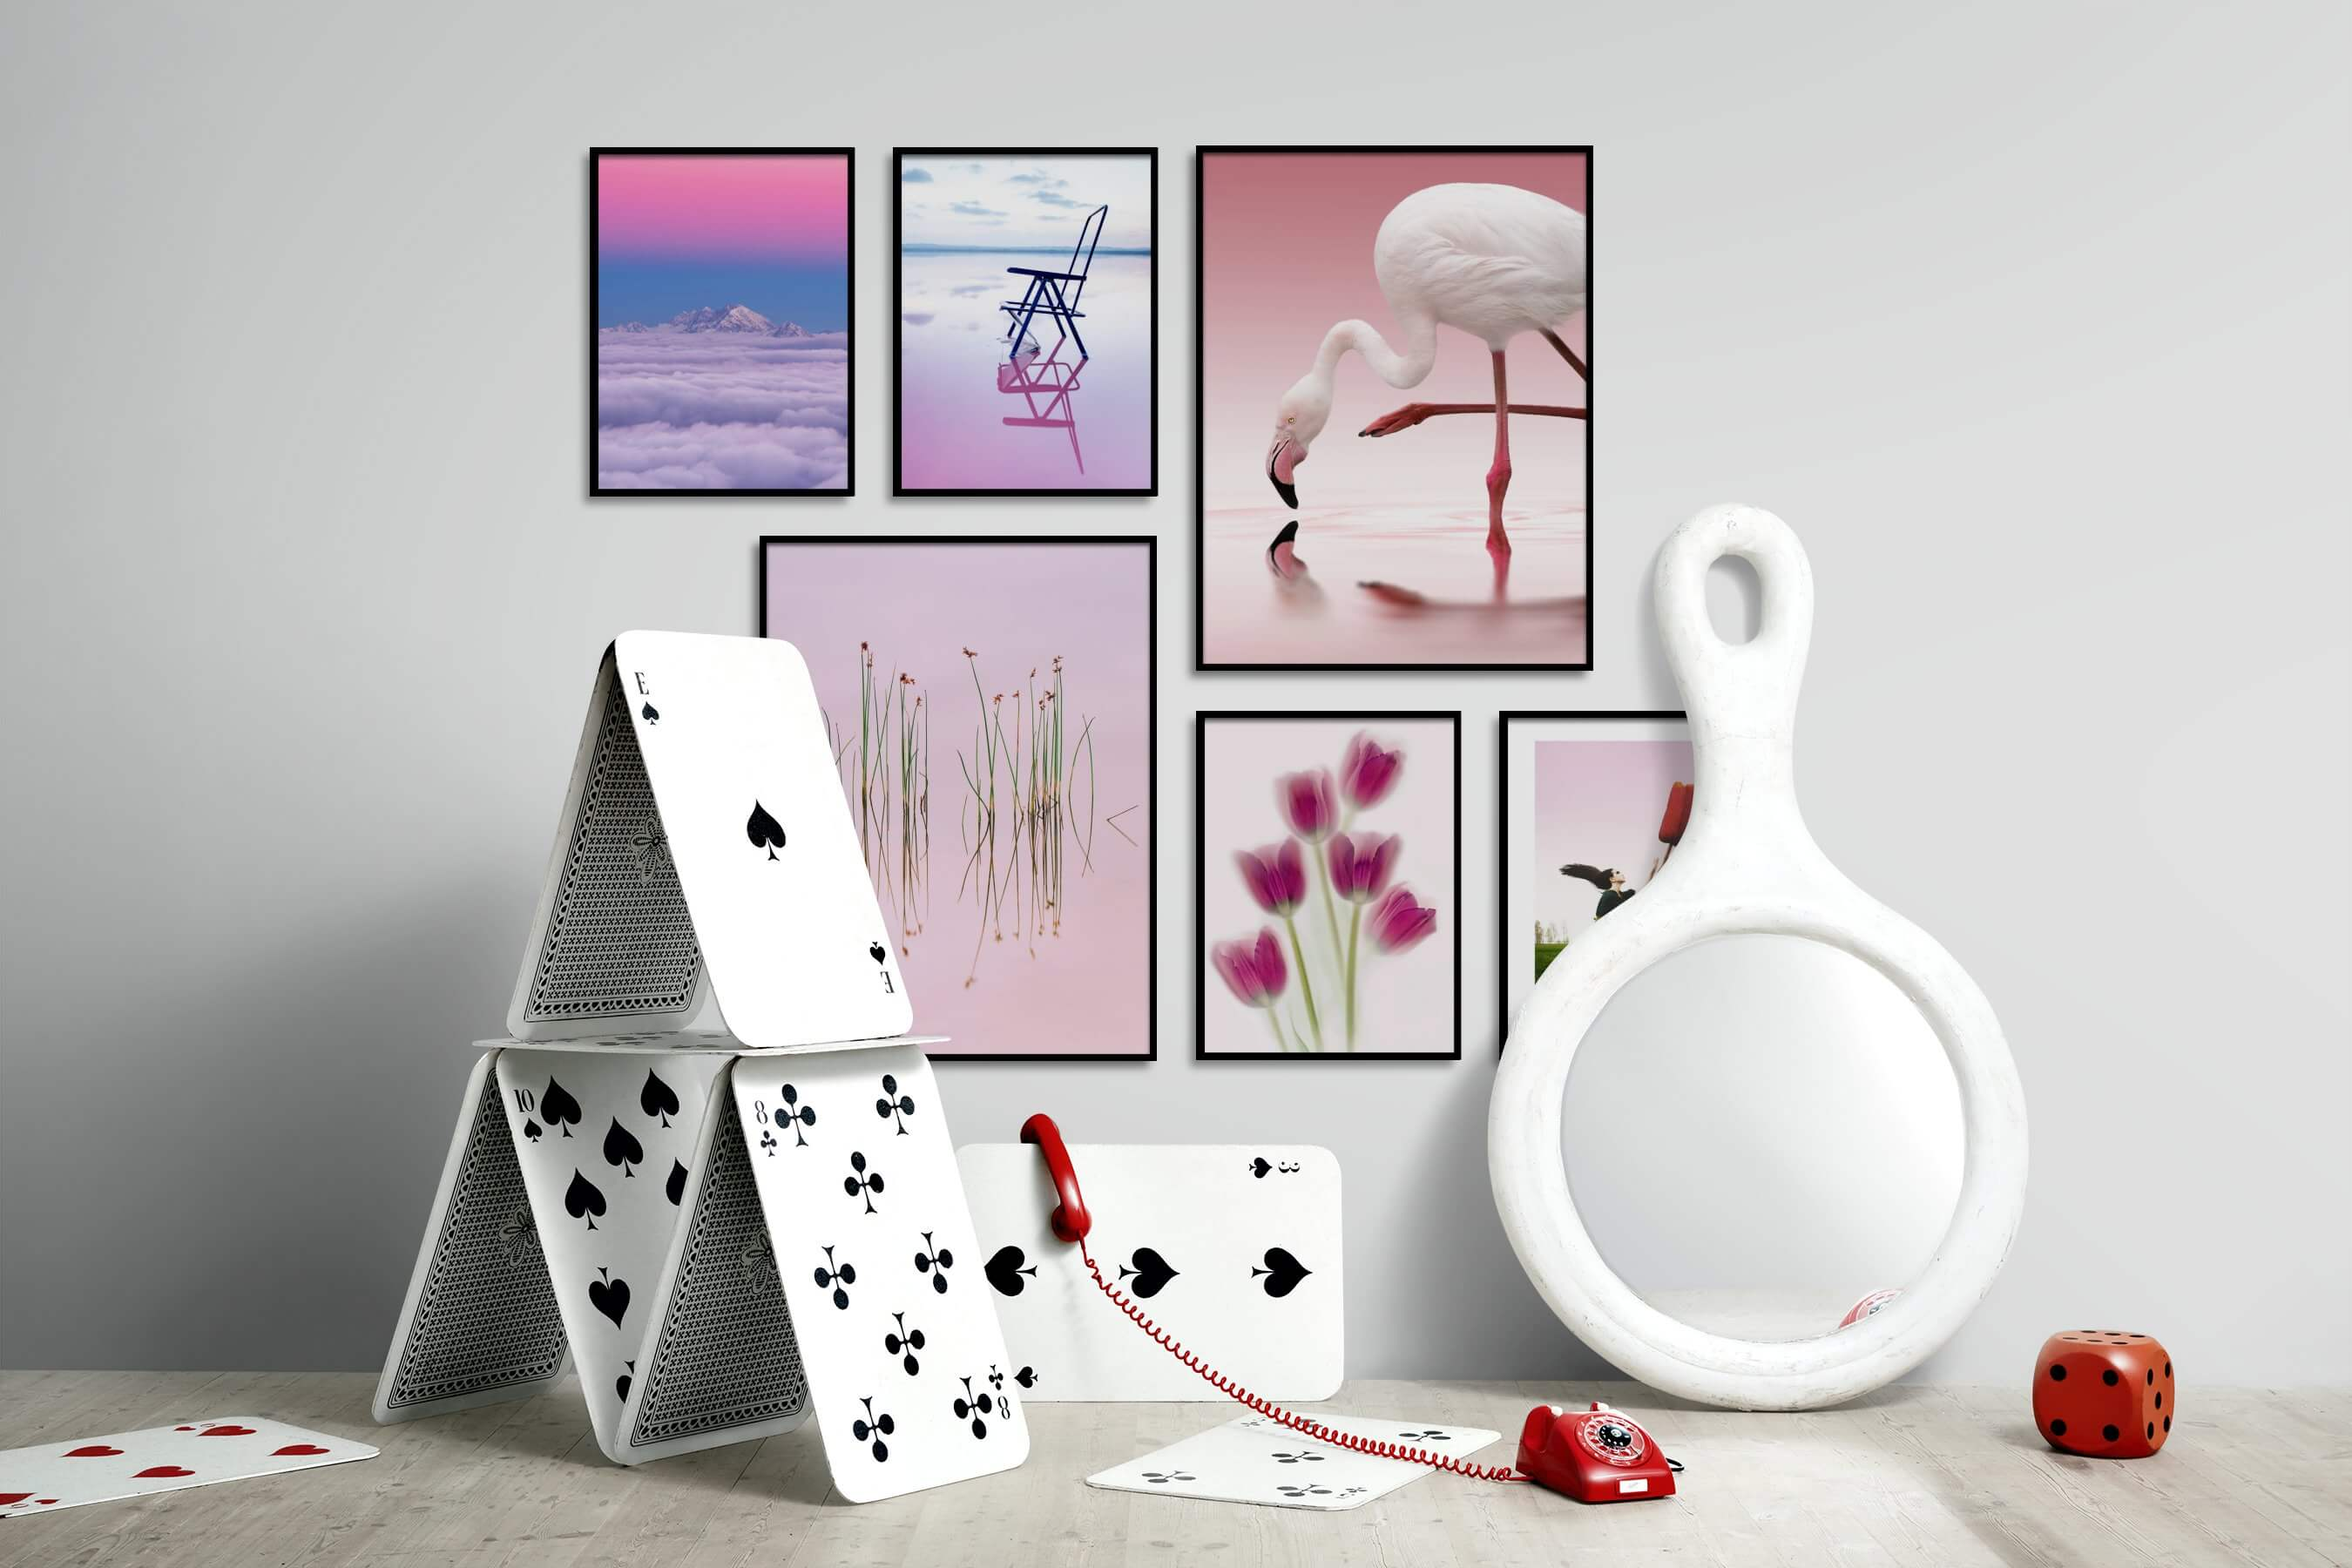 Gallery wall idea with six framed pictures arranged on a wall depicting Nature, Mindfulness, For the Minimalist, Beach & Water, Colorful, Flowers & Plants, Animals, For the Moderate, Artsy, and Country Life